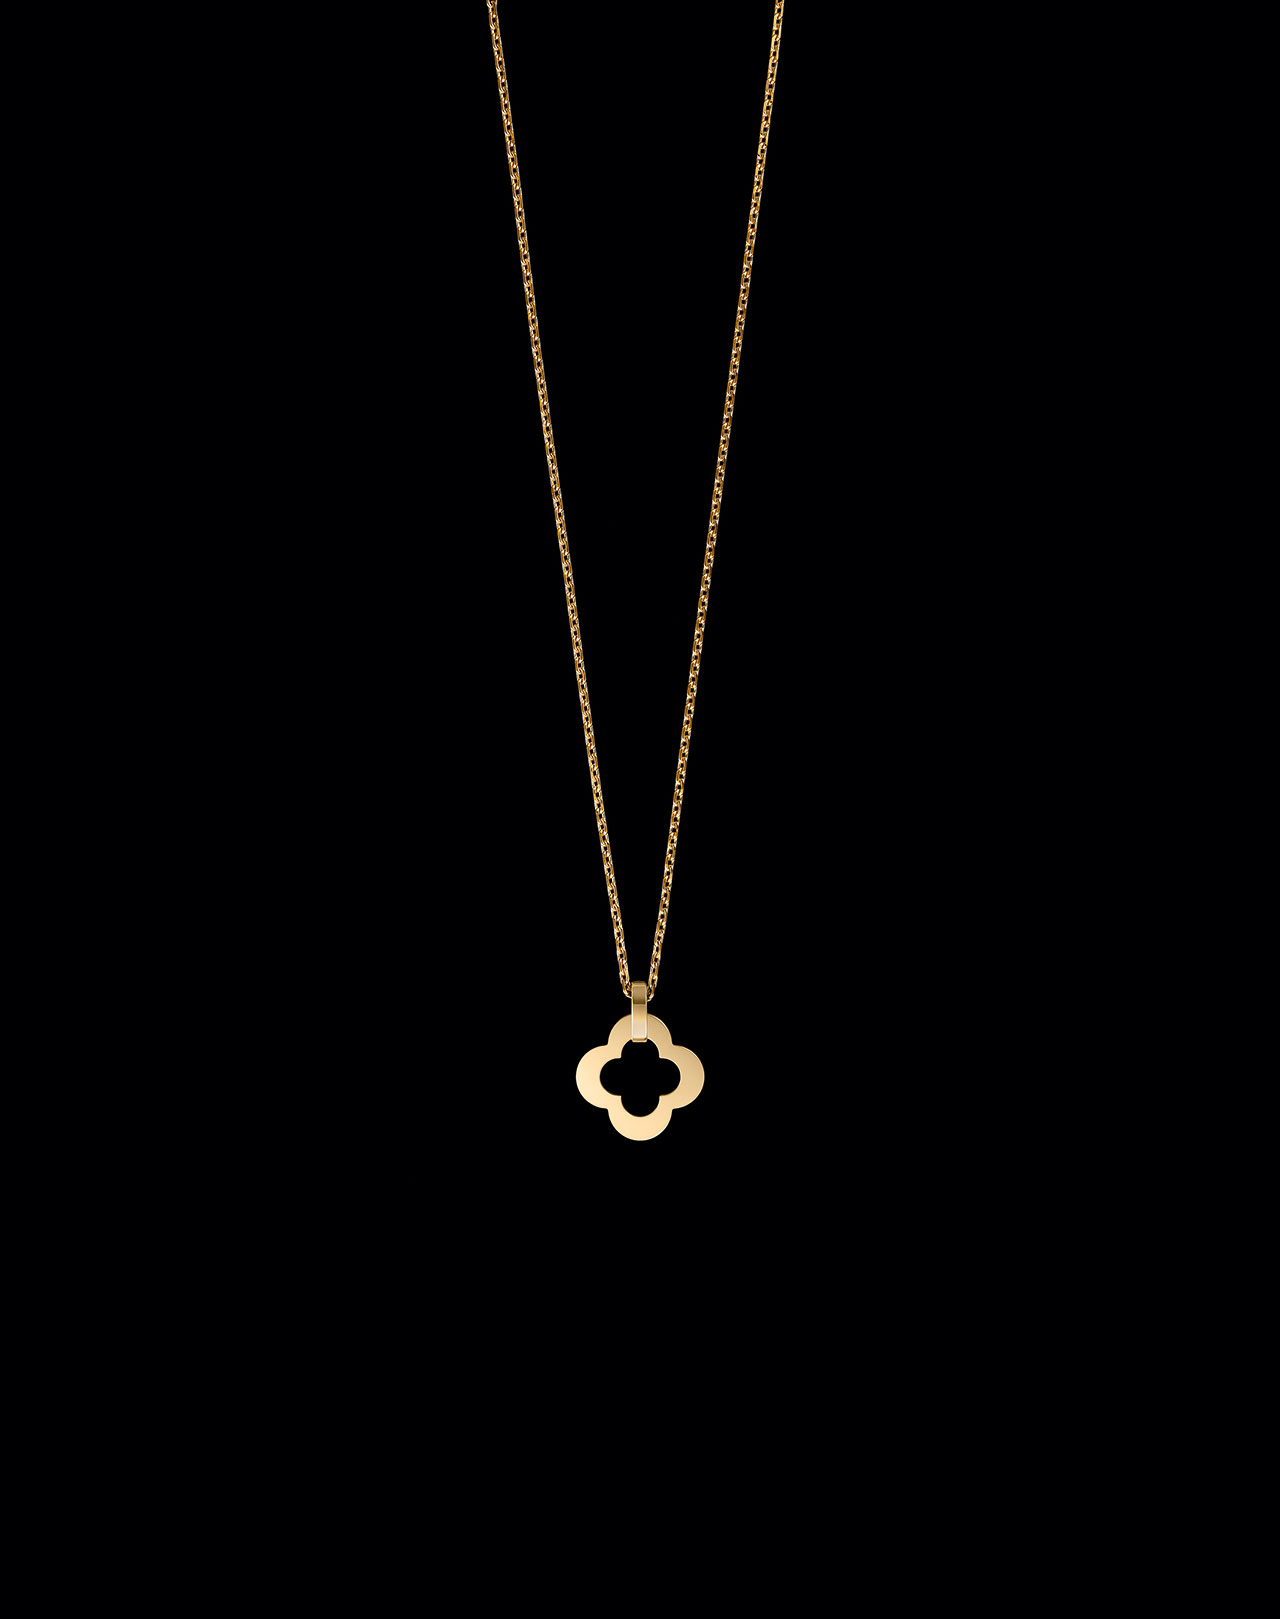 Byzantine Alhambra pendant, yellow gold, 2018.Photo by Patrick Gries ©Van Cleef and Arpels.